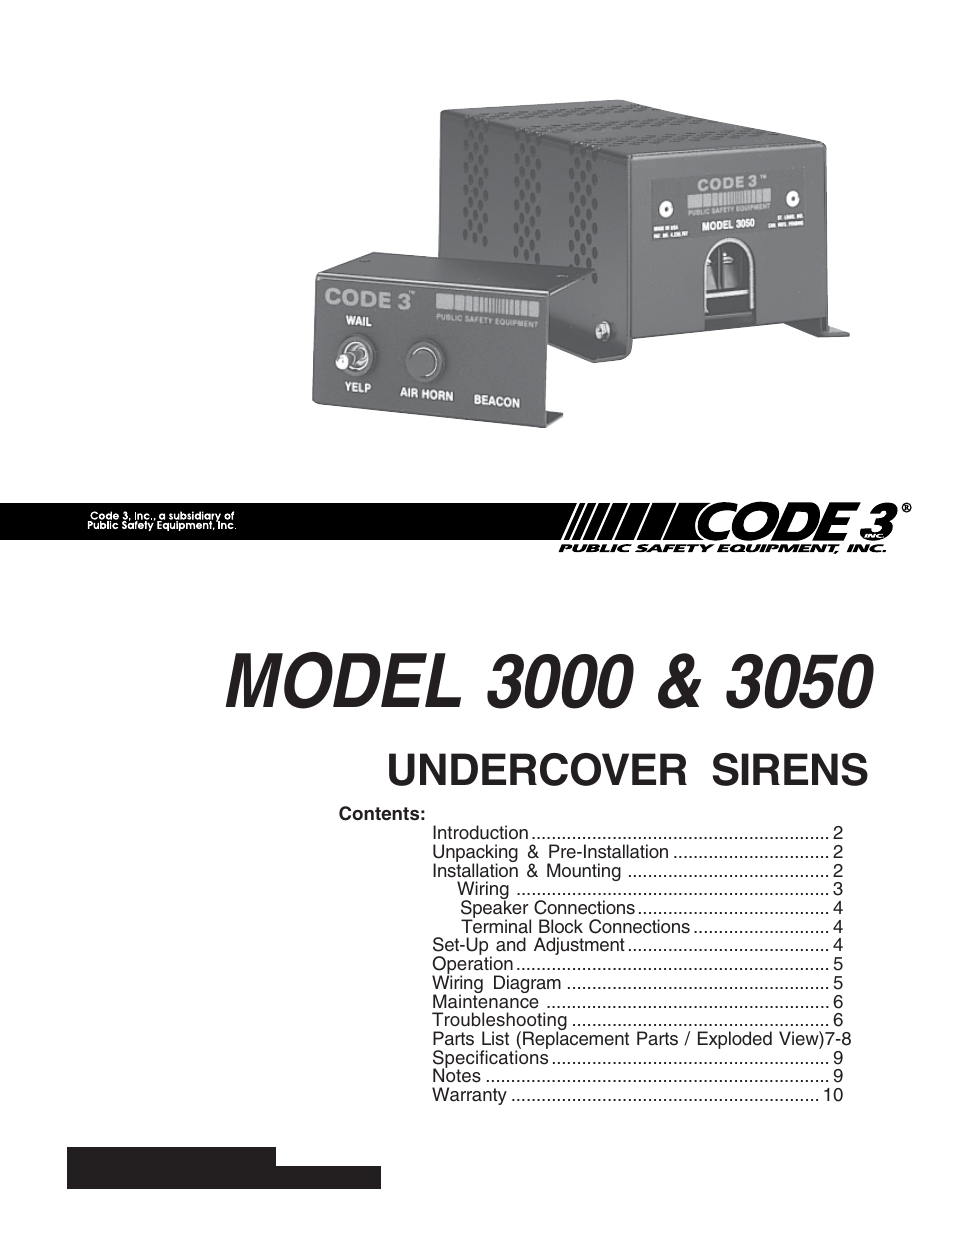 code 3 undercover siren user manual 10 pages rh manualsdir com code 3 arrowstik wiring diagram code 3 mx7000 wiring diagram